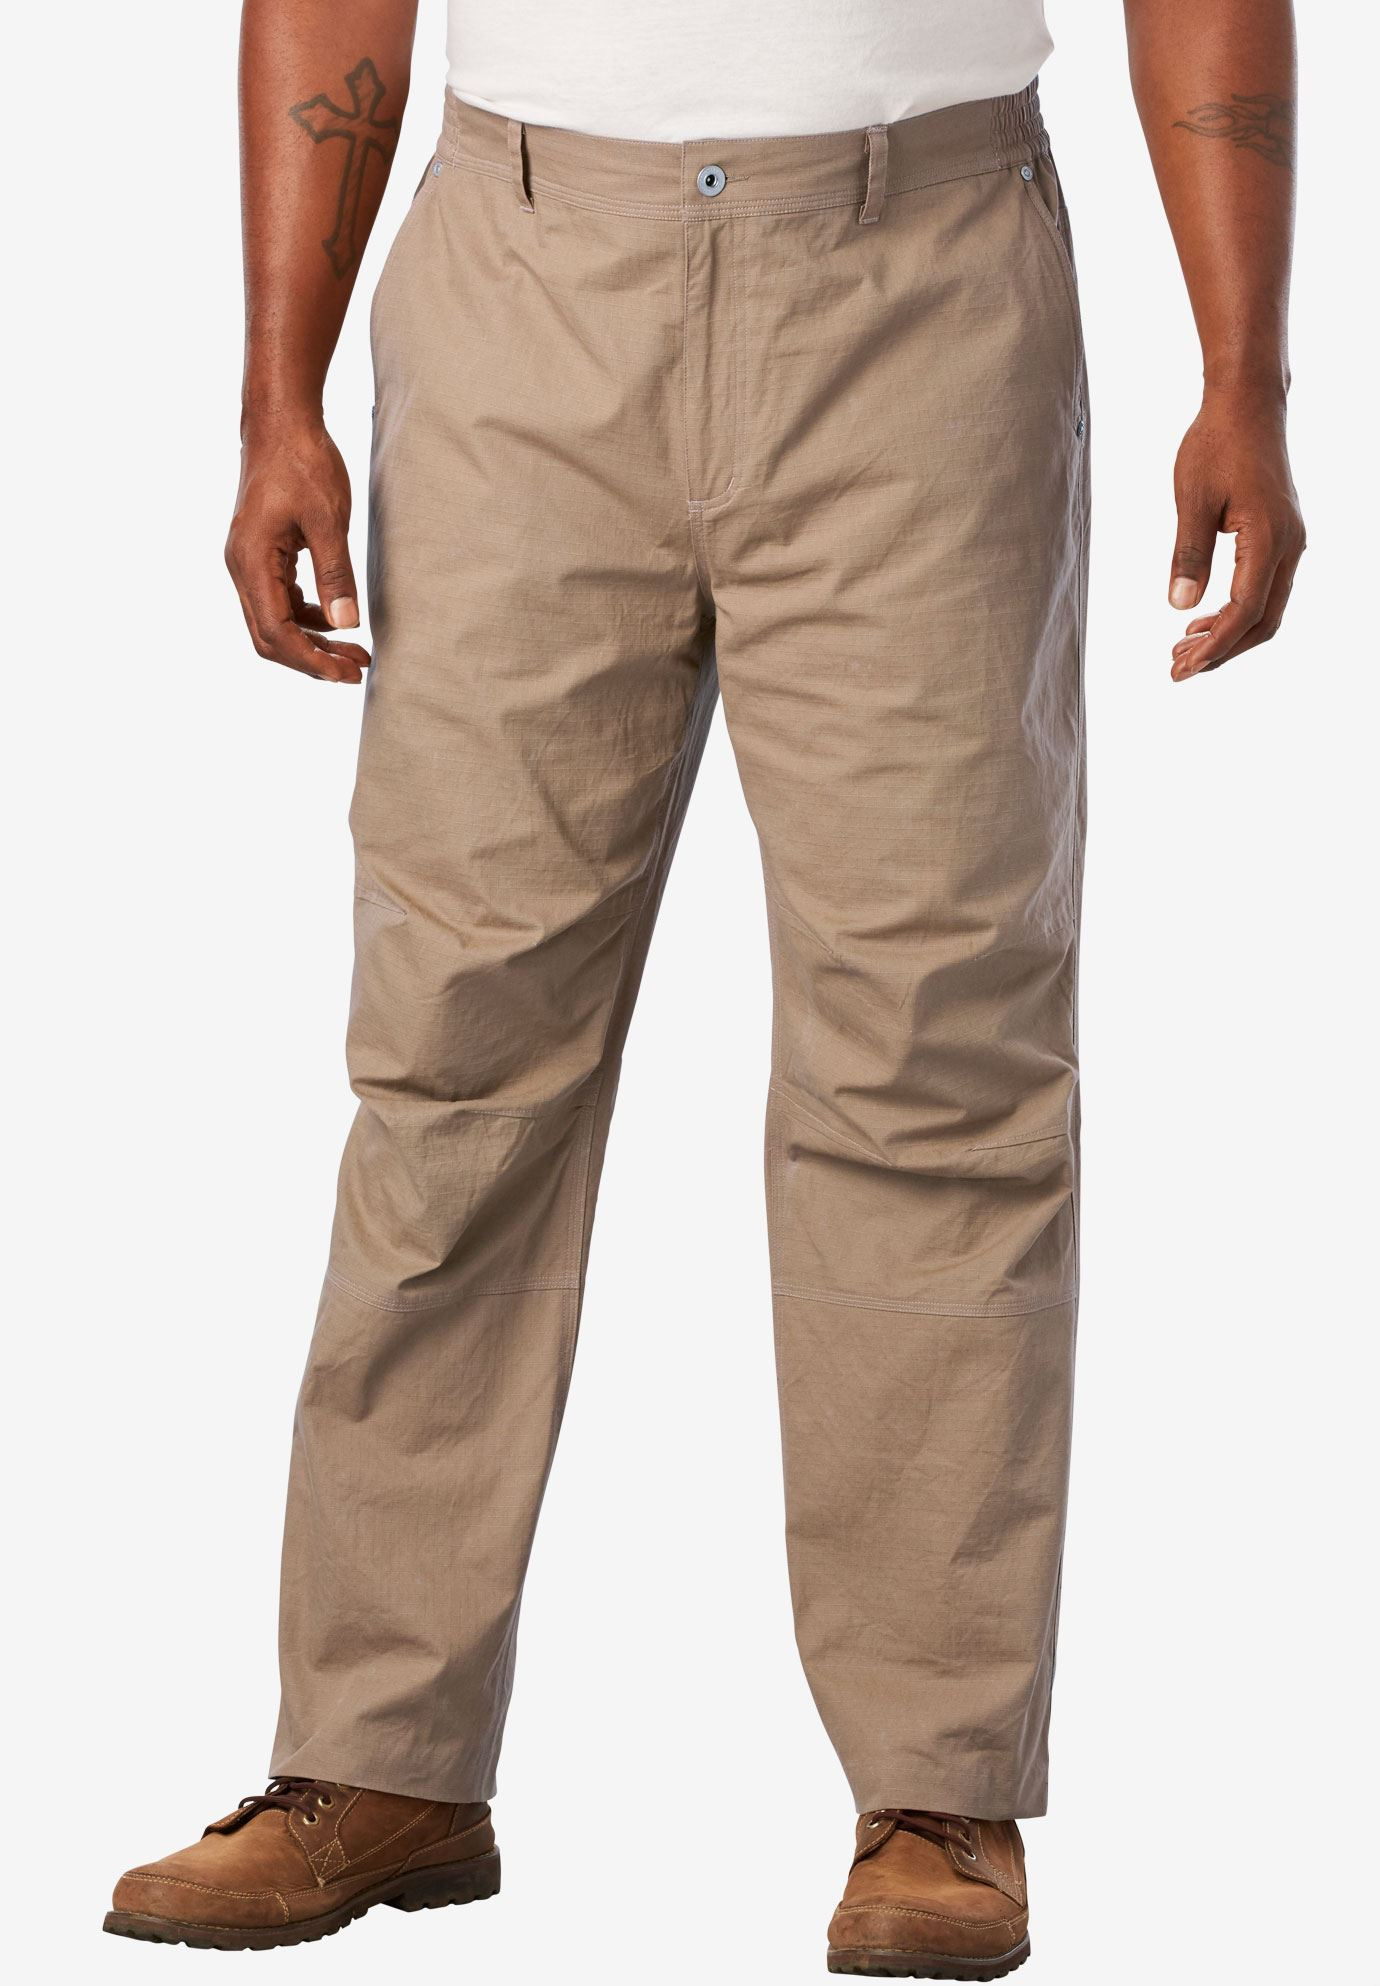 Resistance Pants by Boulder Creek®,